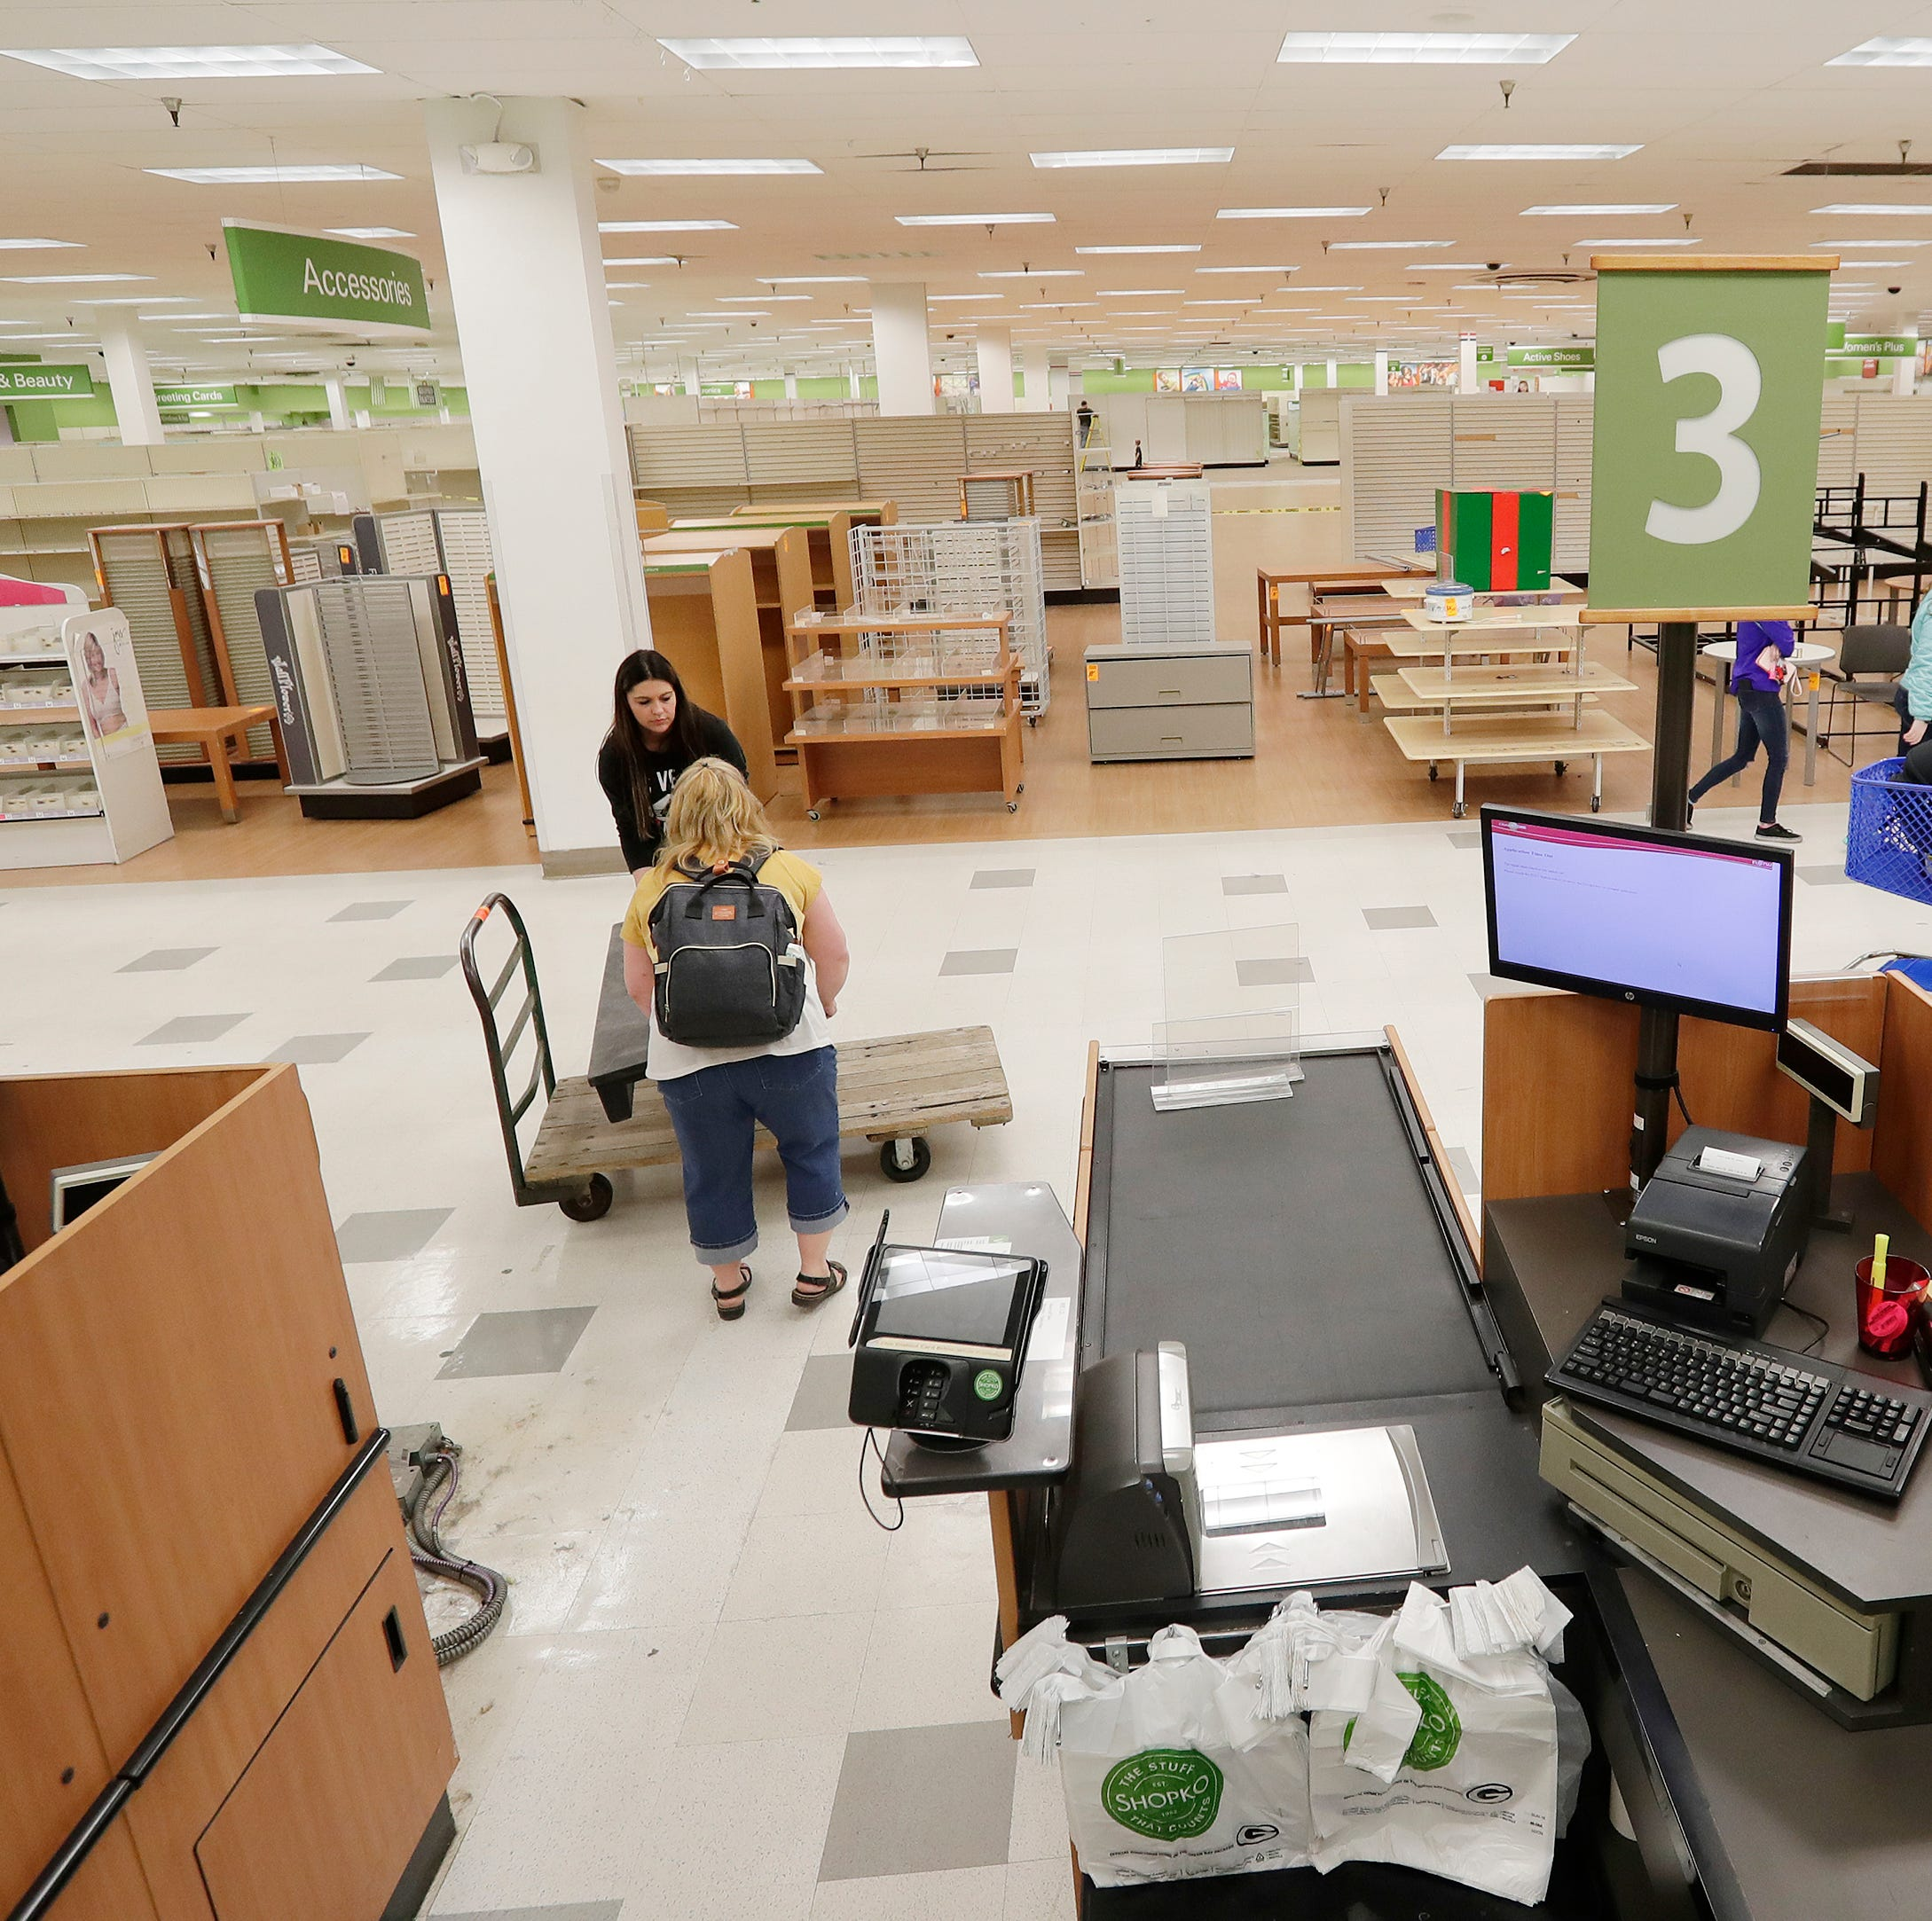 Shopko, Sun Capital propose $15 million payment to settle claim of improper dividend payments